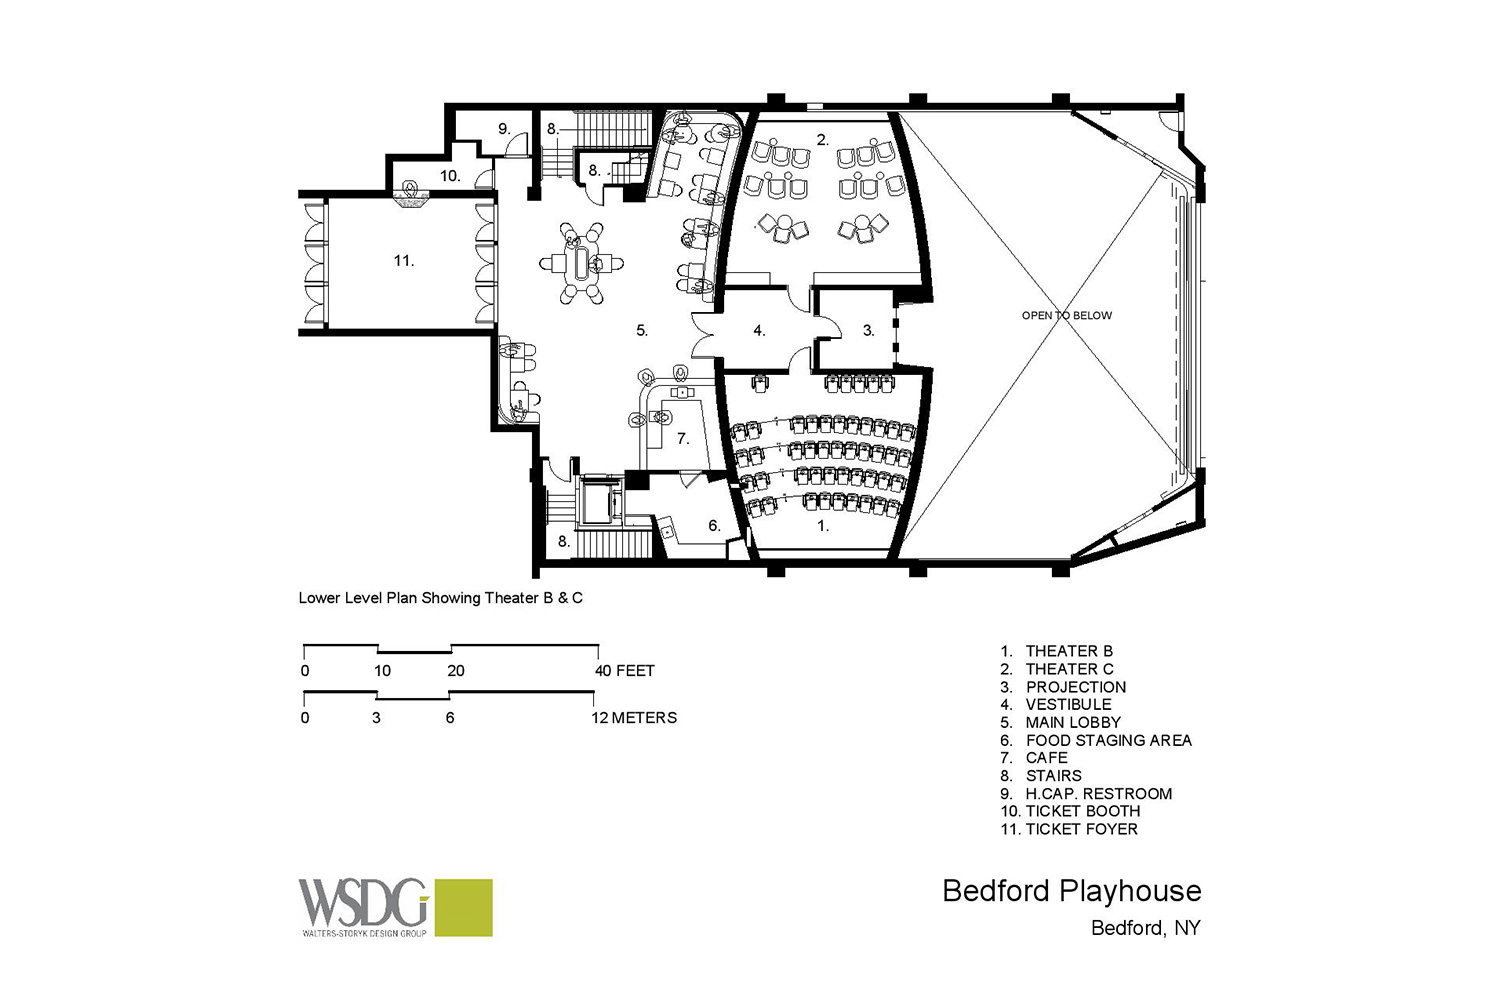 The Bedford Playhouse/Clive Davis Arts Center is a classic movie theater in the final stages of a total renovation. WSDG is providing complete acoustic and A/V design and consultation for the complex. Presentation Drawing 2